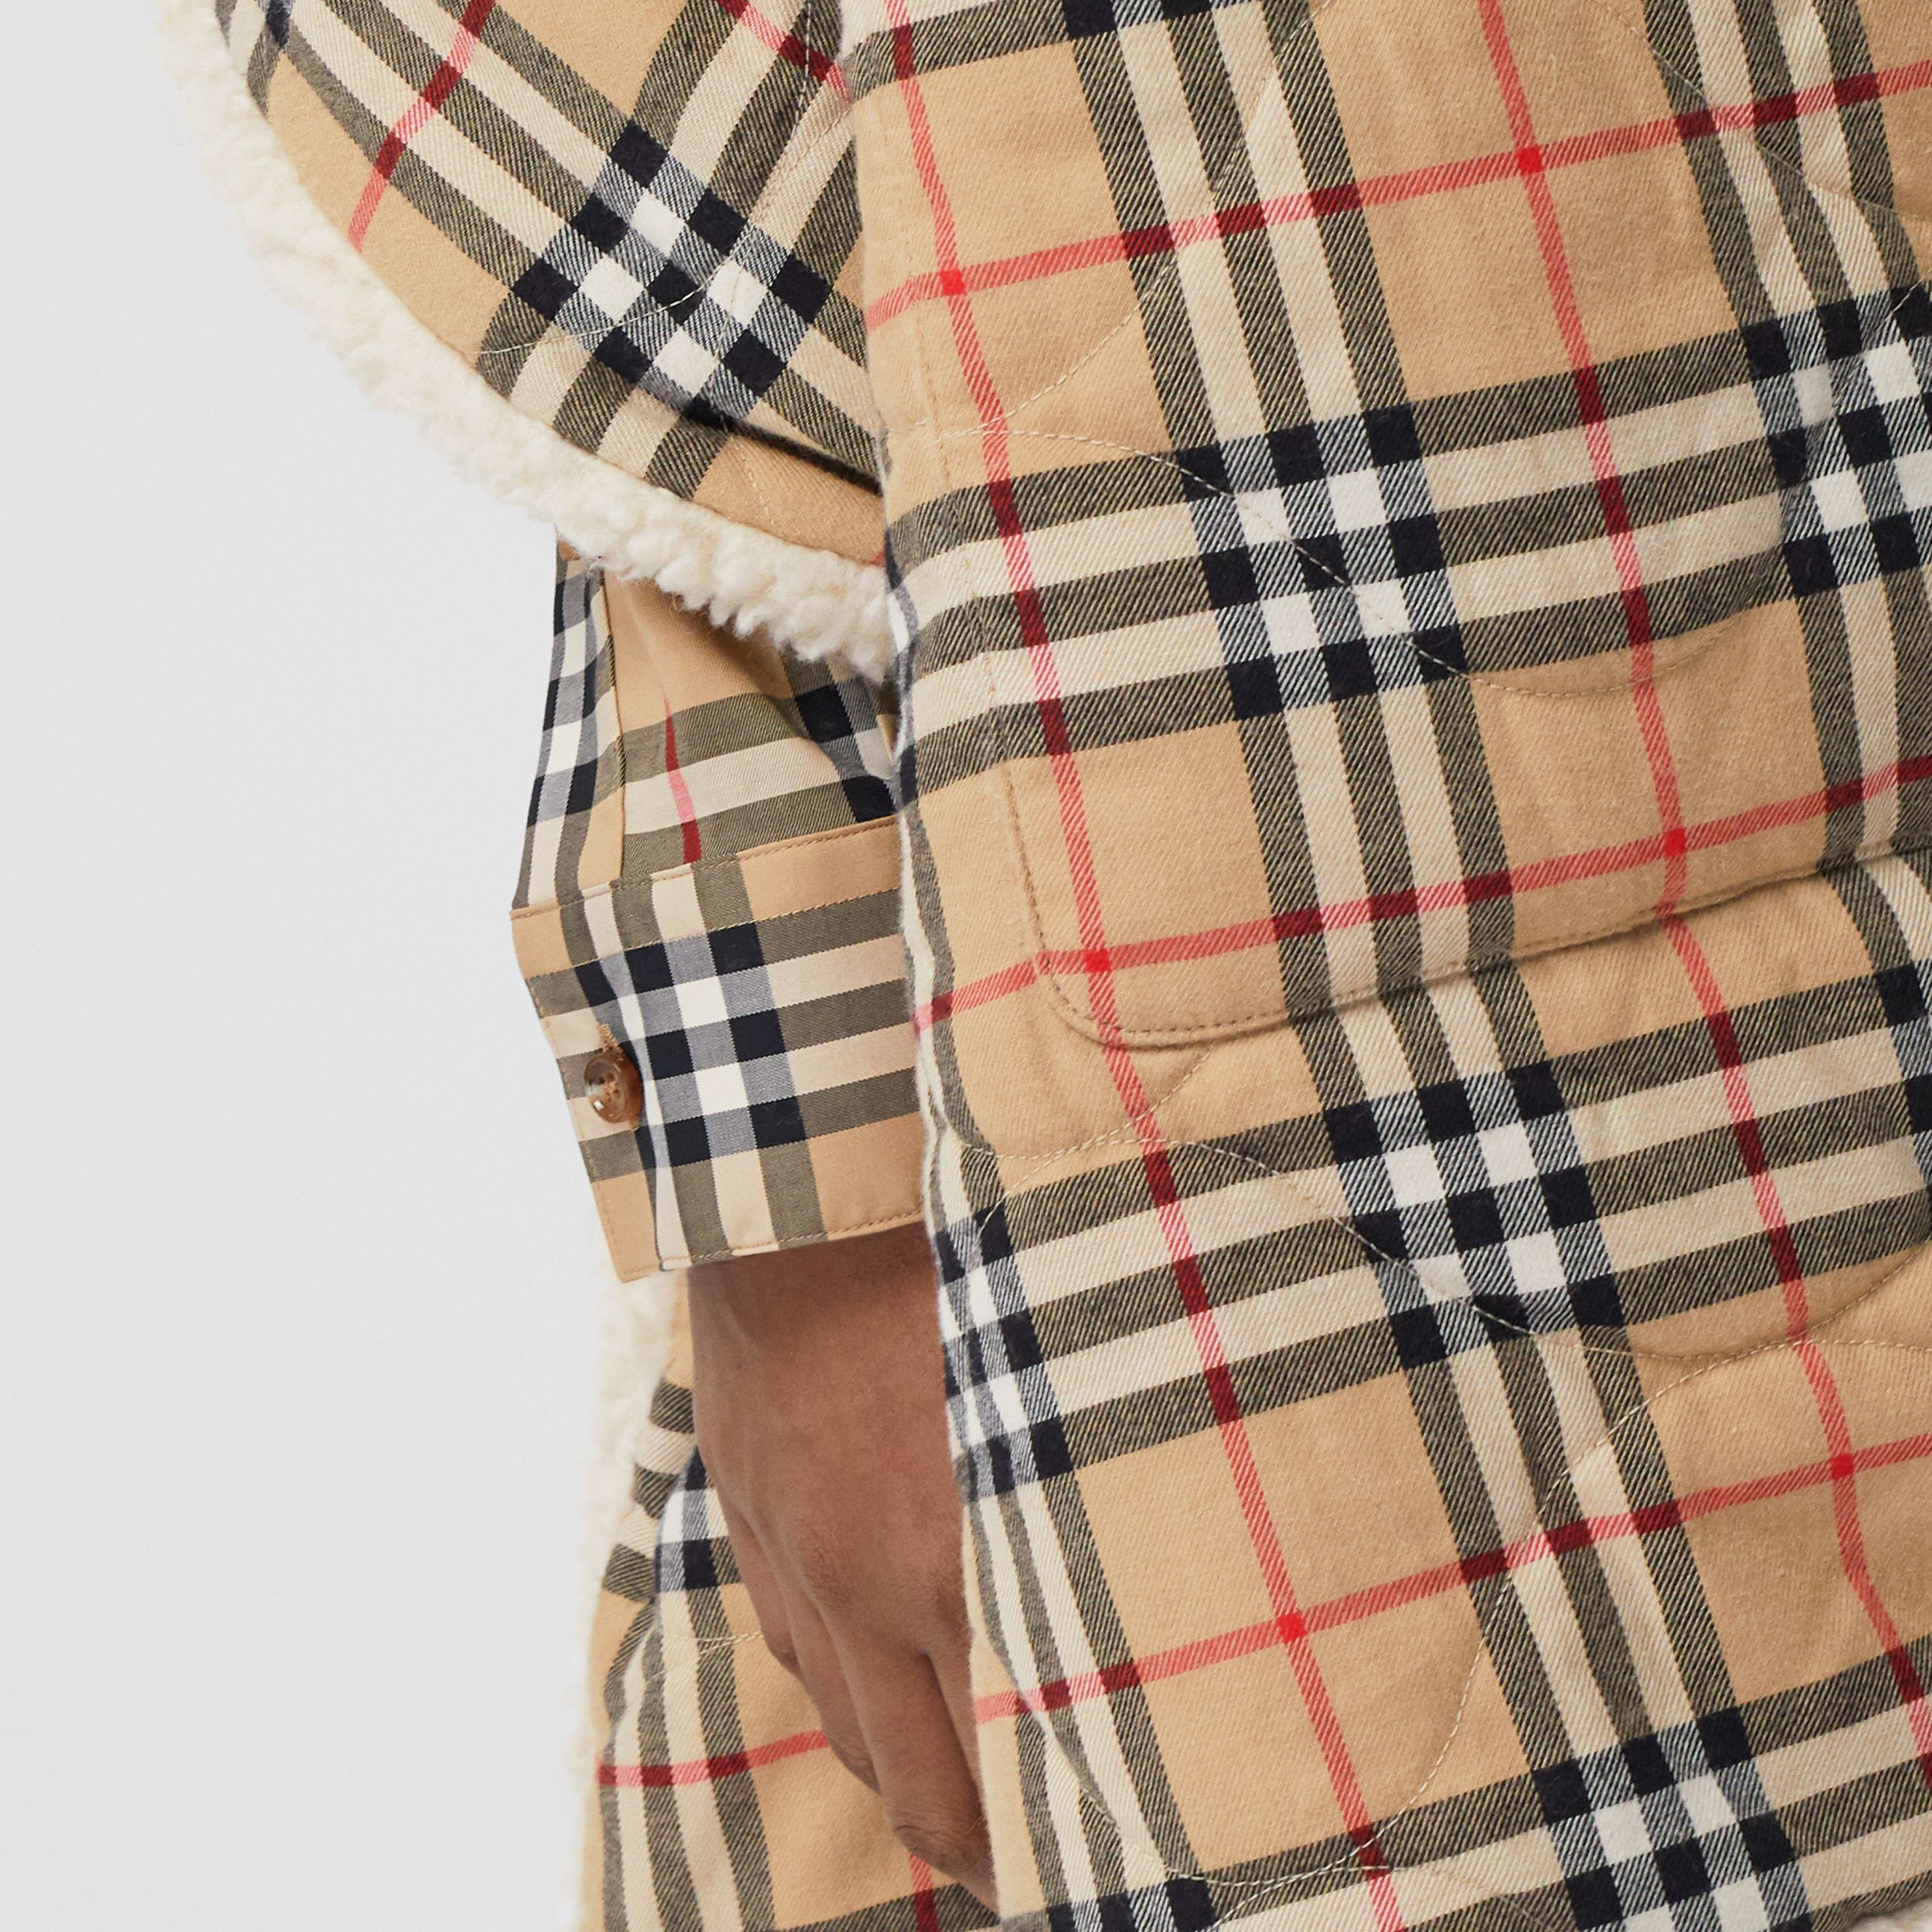 Fleece-lined Vintage Check Cotton Hooded Cape in Camel - Women | Burberry - 2